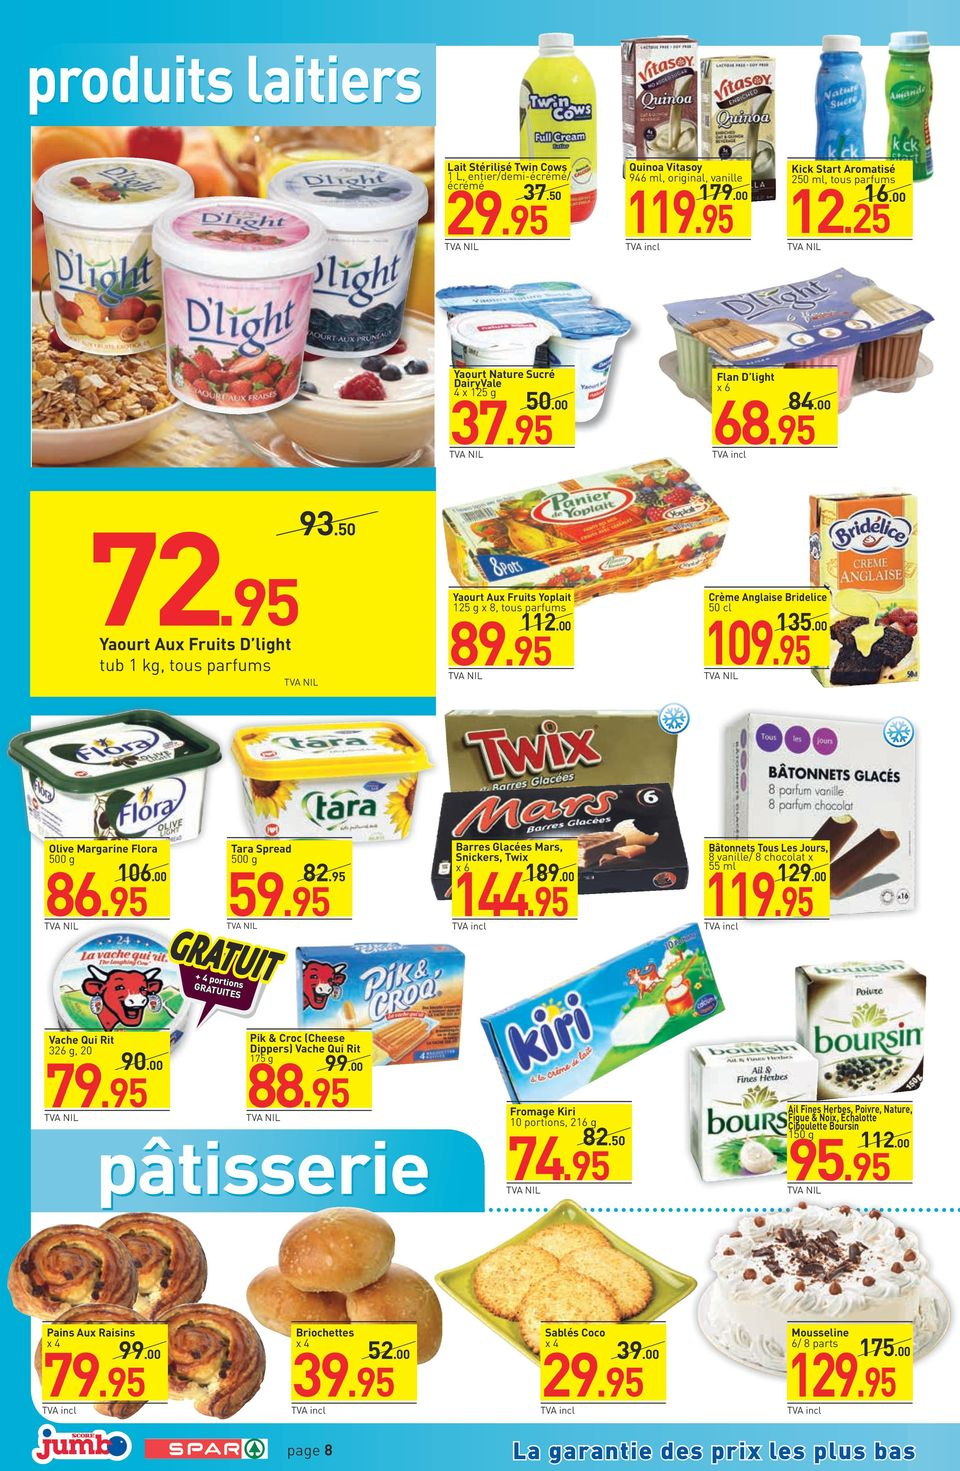 95 112.00 Crème Anglaise Bridelice 50 cl 135.00 109.95 Olive Margarine Flora 86.95 106.00 Tara Spread 82.95 Barres Glacées Mars, Snickers, Twix x 6 189.